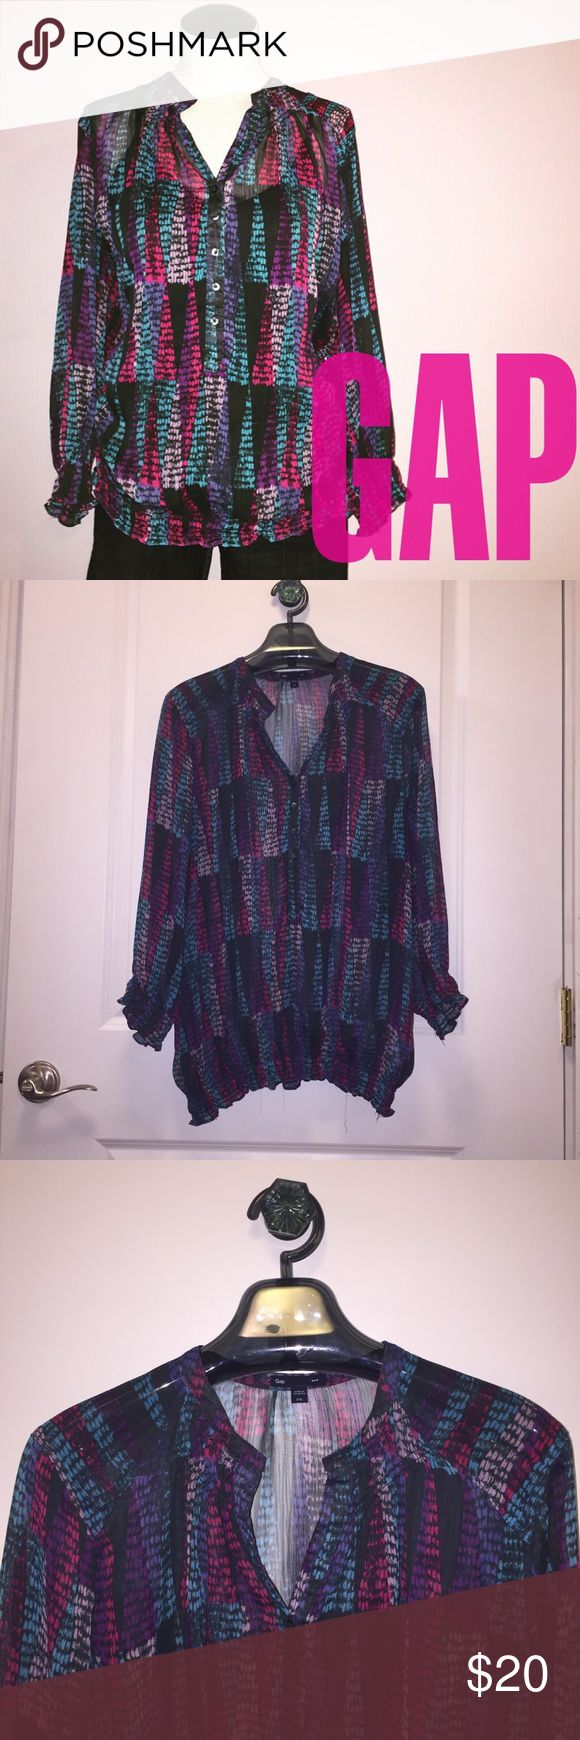 GAP sheer colorful blouse 🔮 Like new! Gap sheer blouse patterned with elongated triangles in colors of magenta, purple, teal, light pink and black. Shown with a black cami underneath. Tunic style 1/2 Button-Down. Gathering at the neckline, cuffs and hem for a flowy look. Full-length sleeves. Perfect for spring/summer. Size XXL.  Bundles are only 2 items! Check out my closet, filter by your size, bundle up your likes and make an offer! GAP Tops Blouses